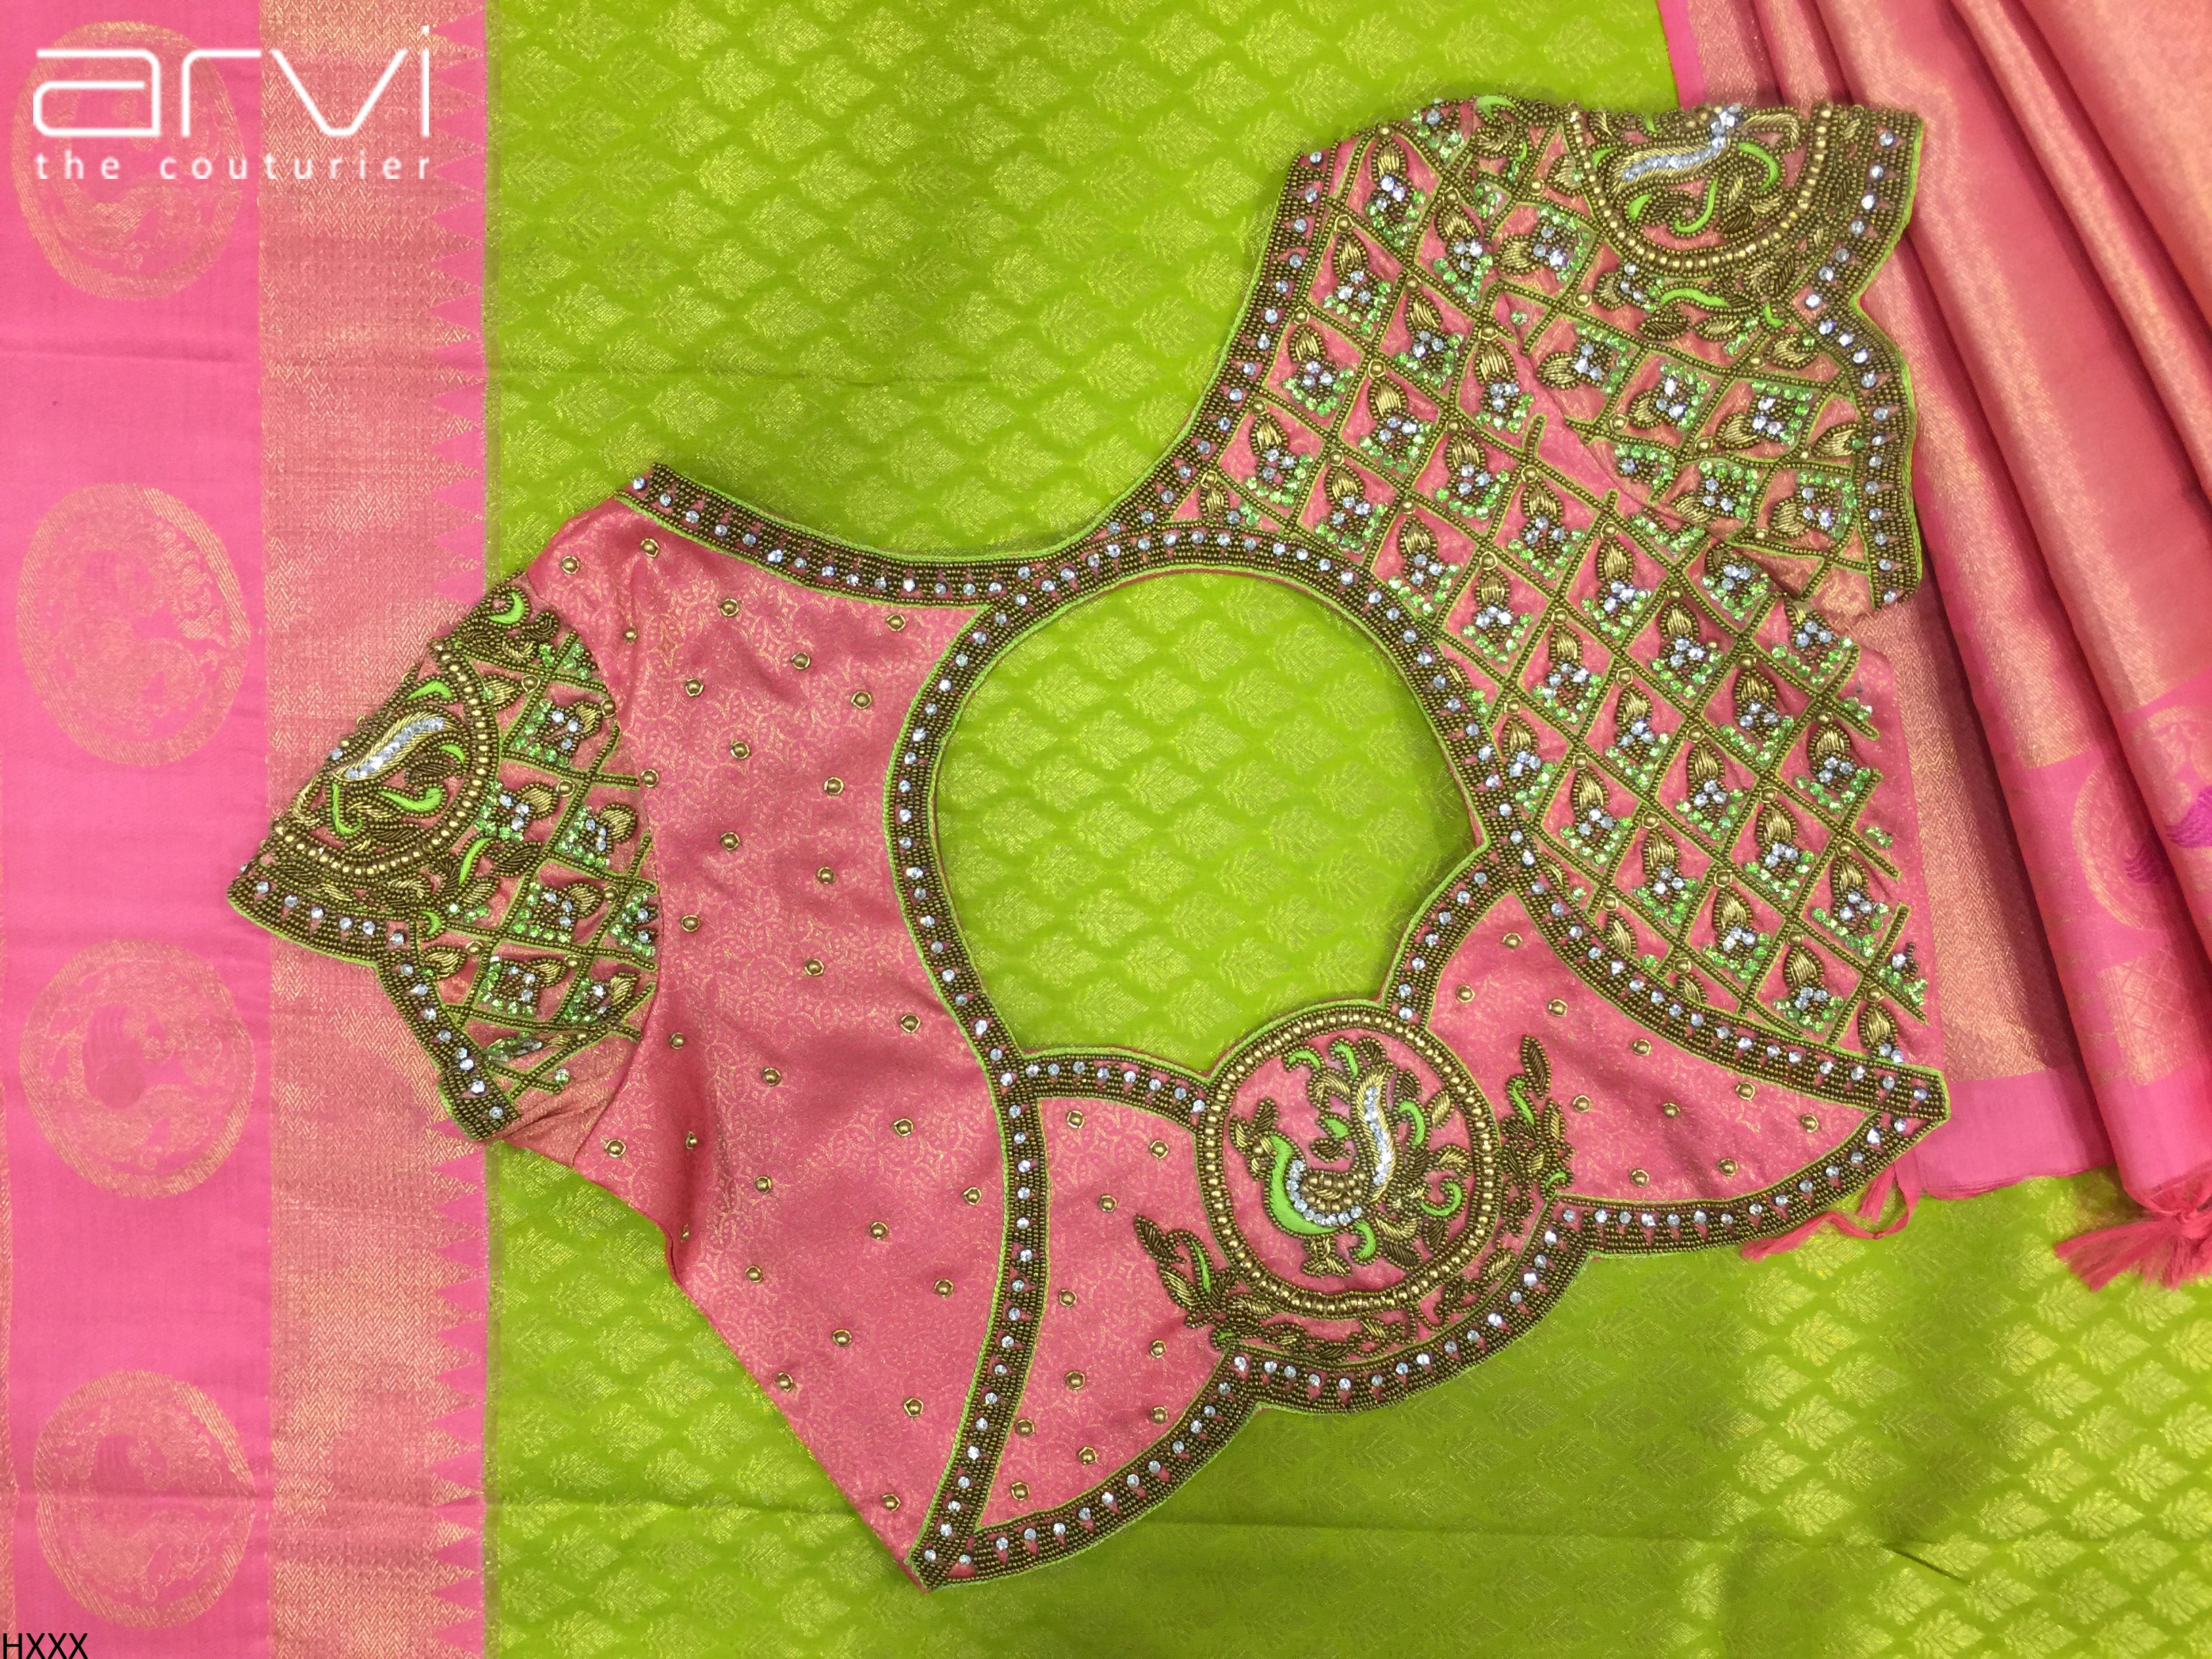 3c9a7d4341bb4e Custom-Tailored Aari work Blouses by Arvi the couturier #bride  #southindianbride #wedding #southindianwedding #prewedding #marriage #bridal  #love #pink ...